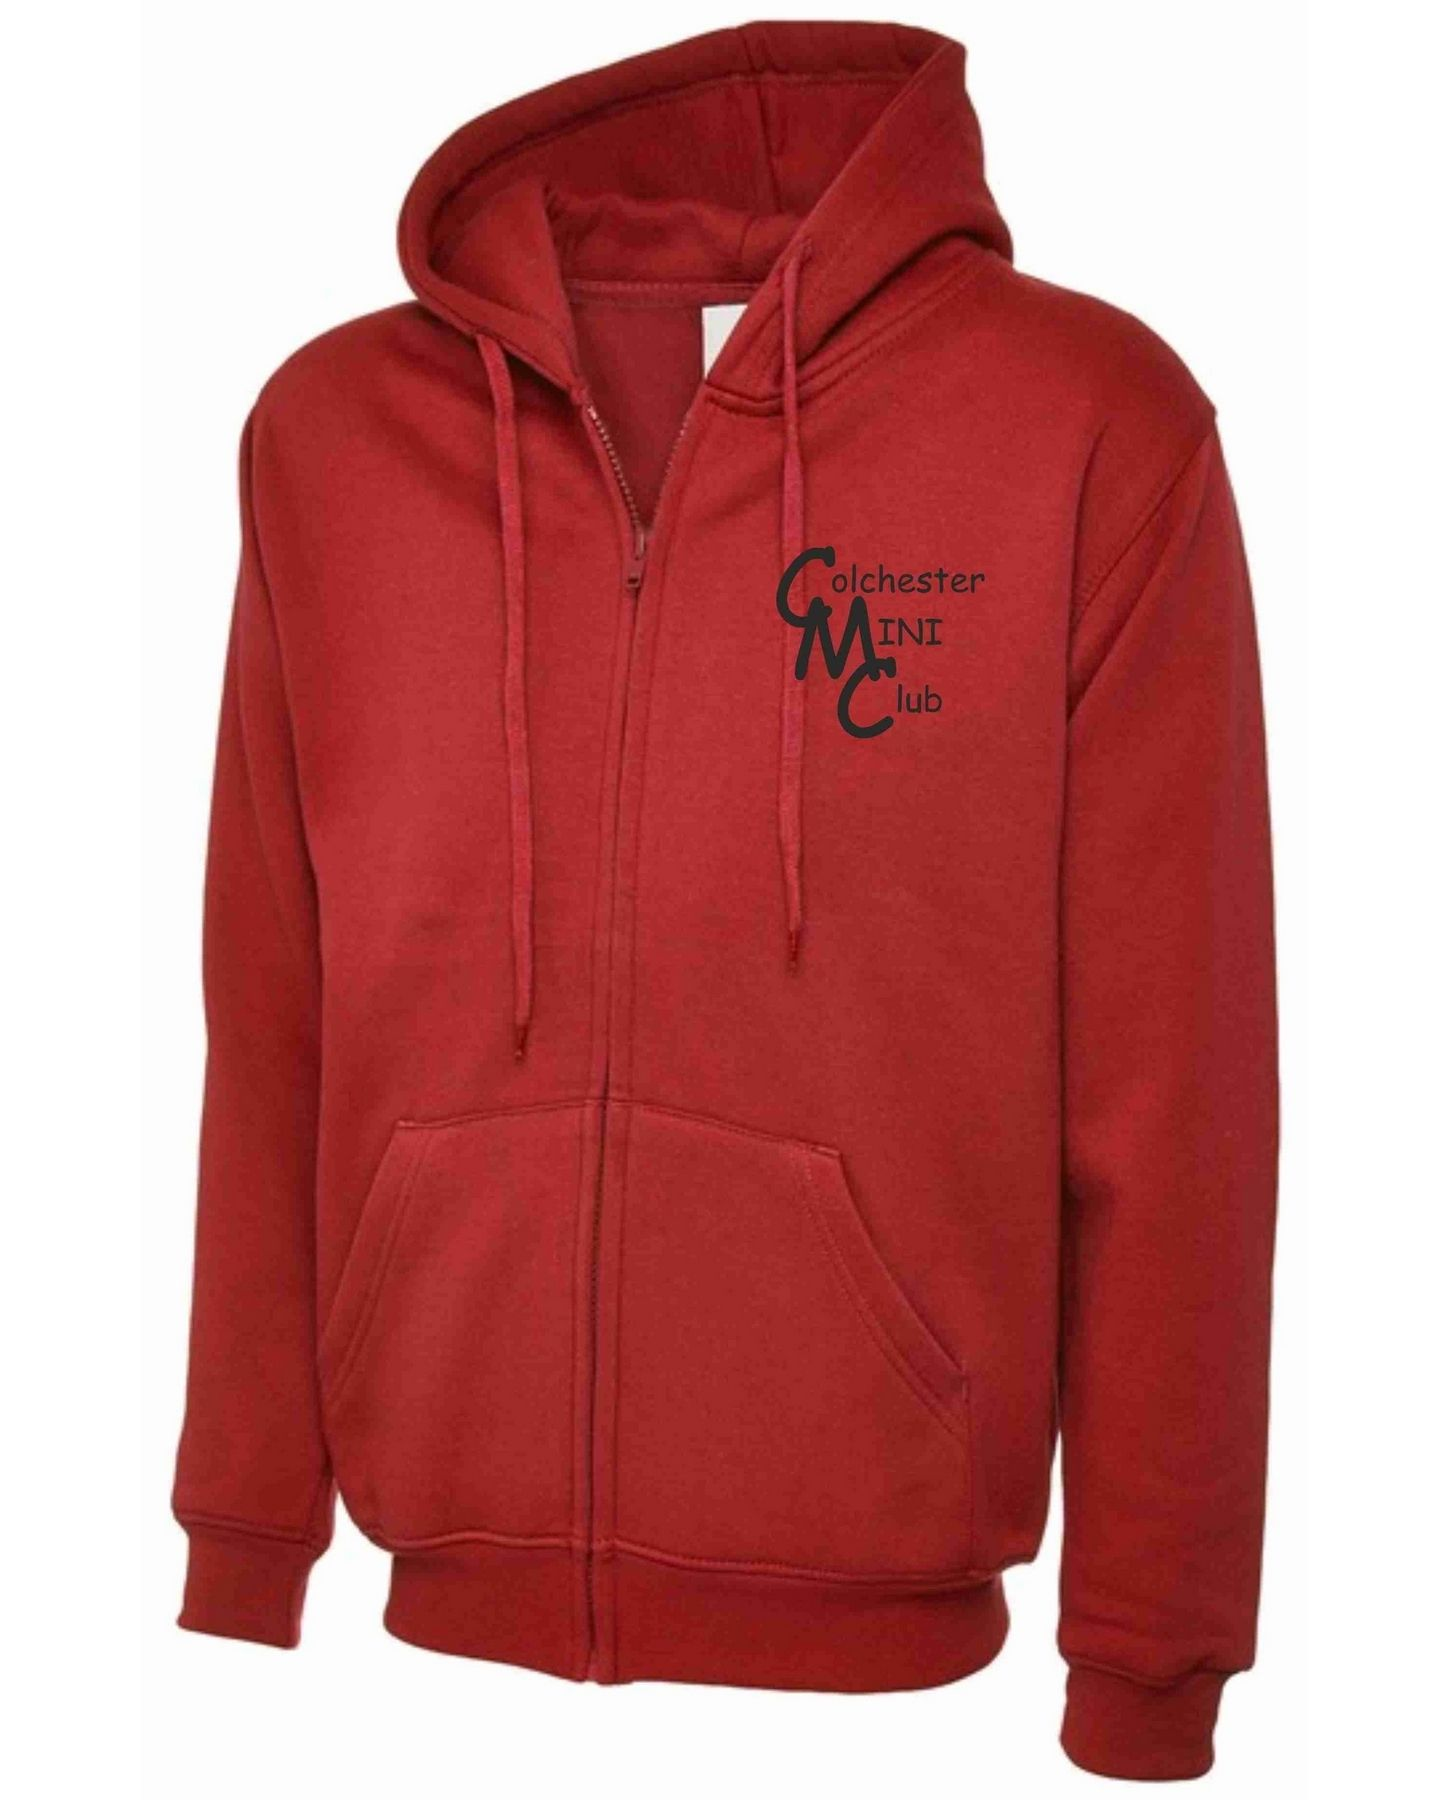 CMC – Uneek Zip Hoodie in Red